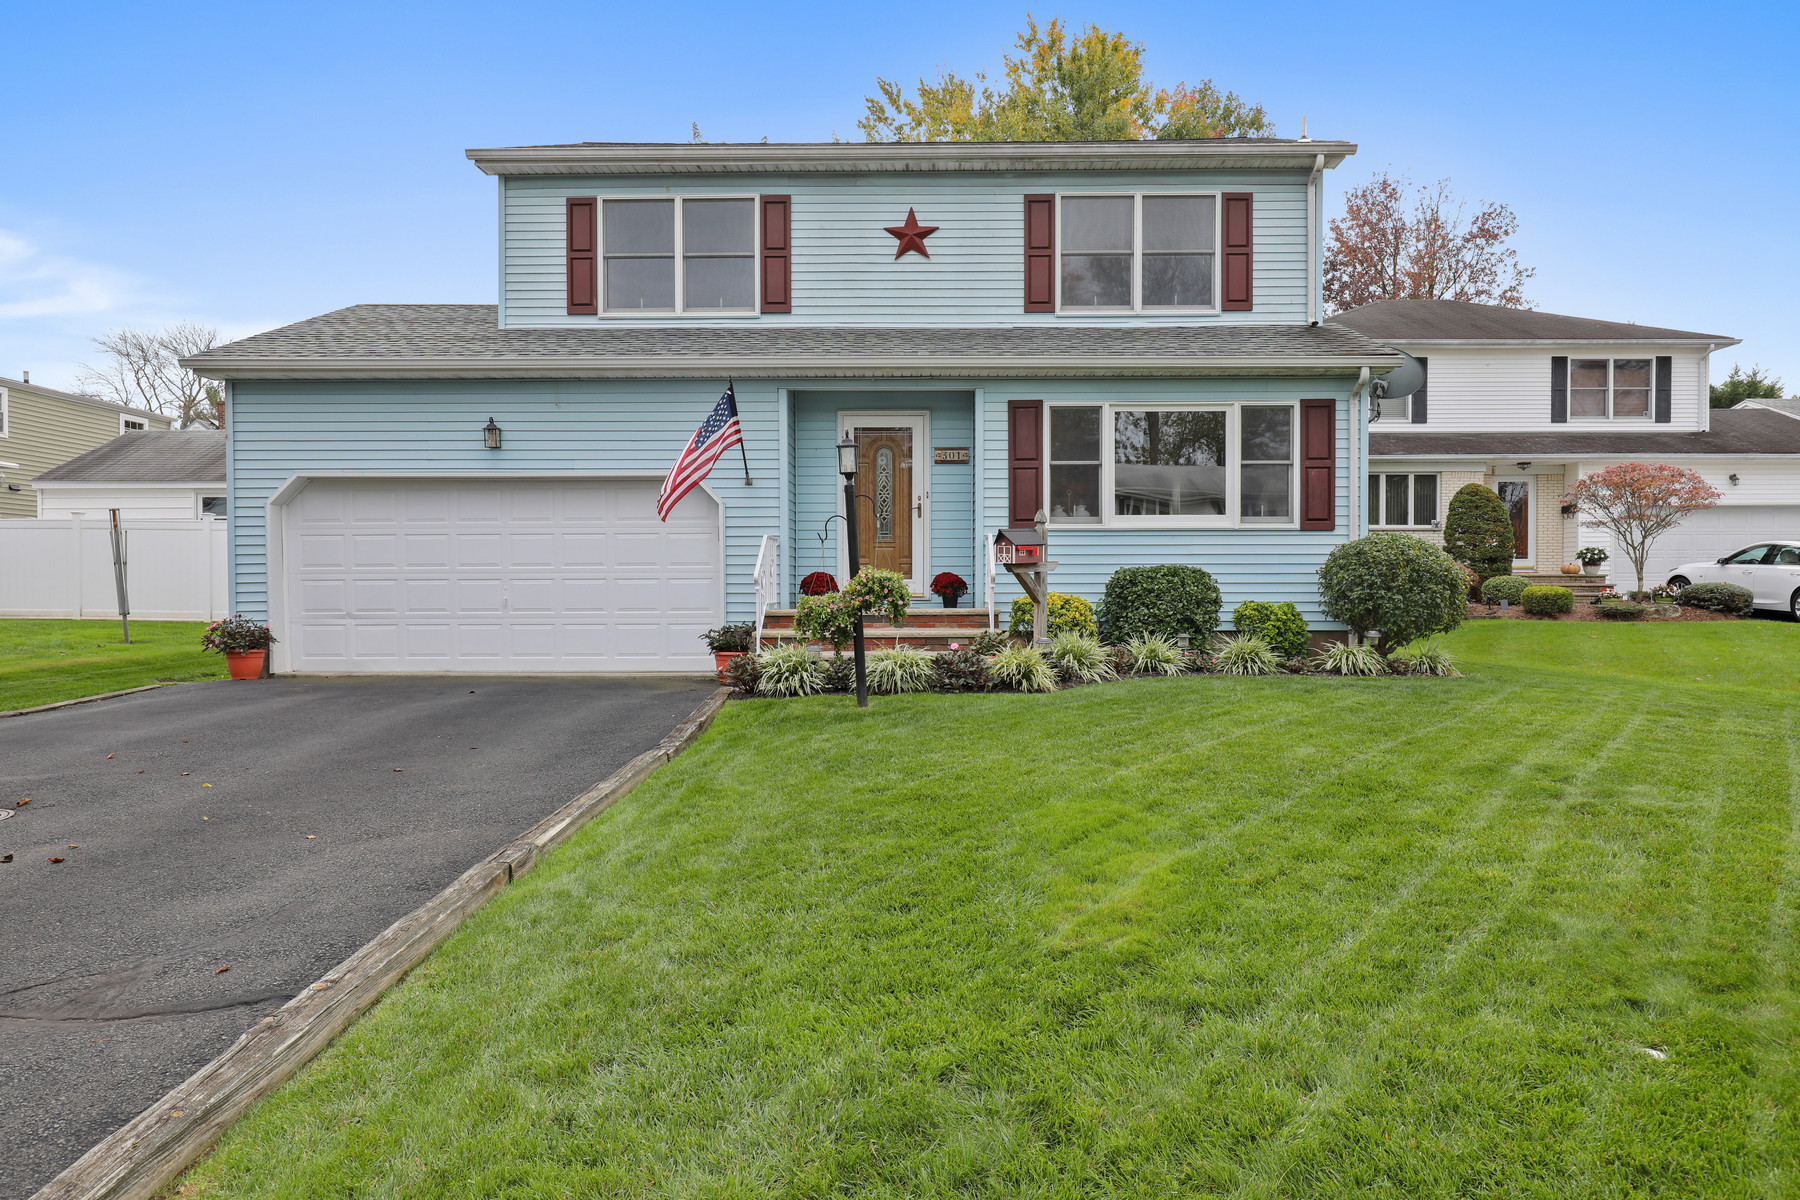 Single Family Homes for Sale at Custom Home 301 4th Avenue, Garwood, New Jersey 07027 United States